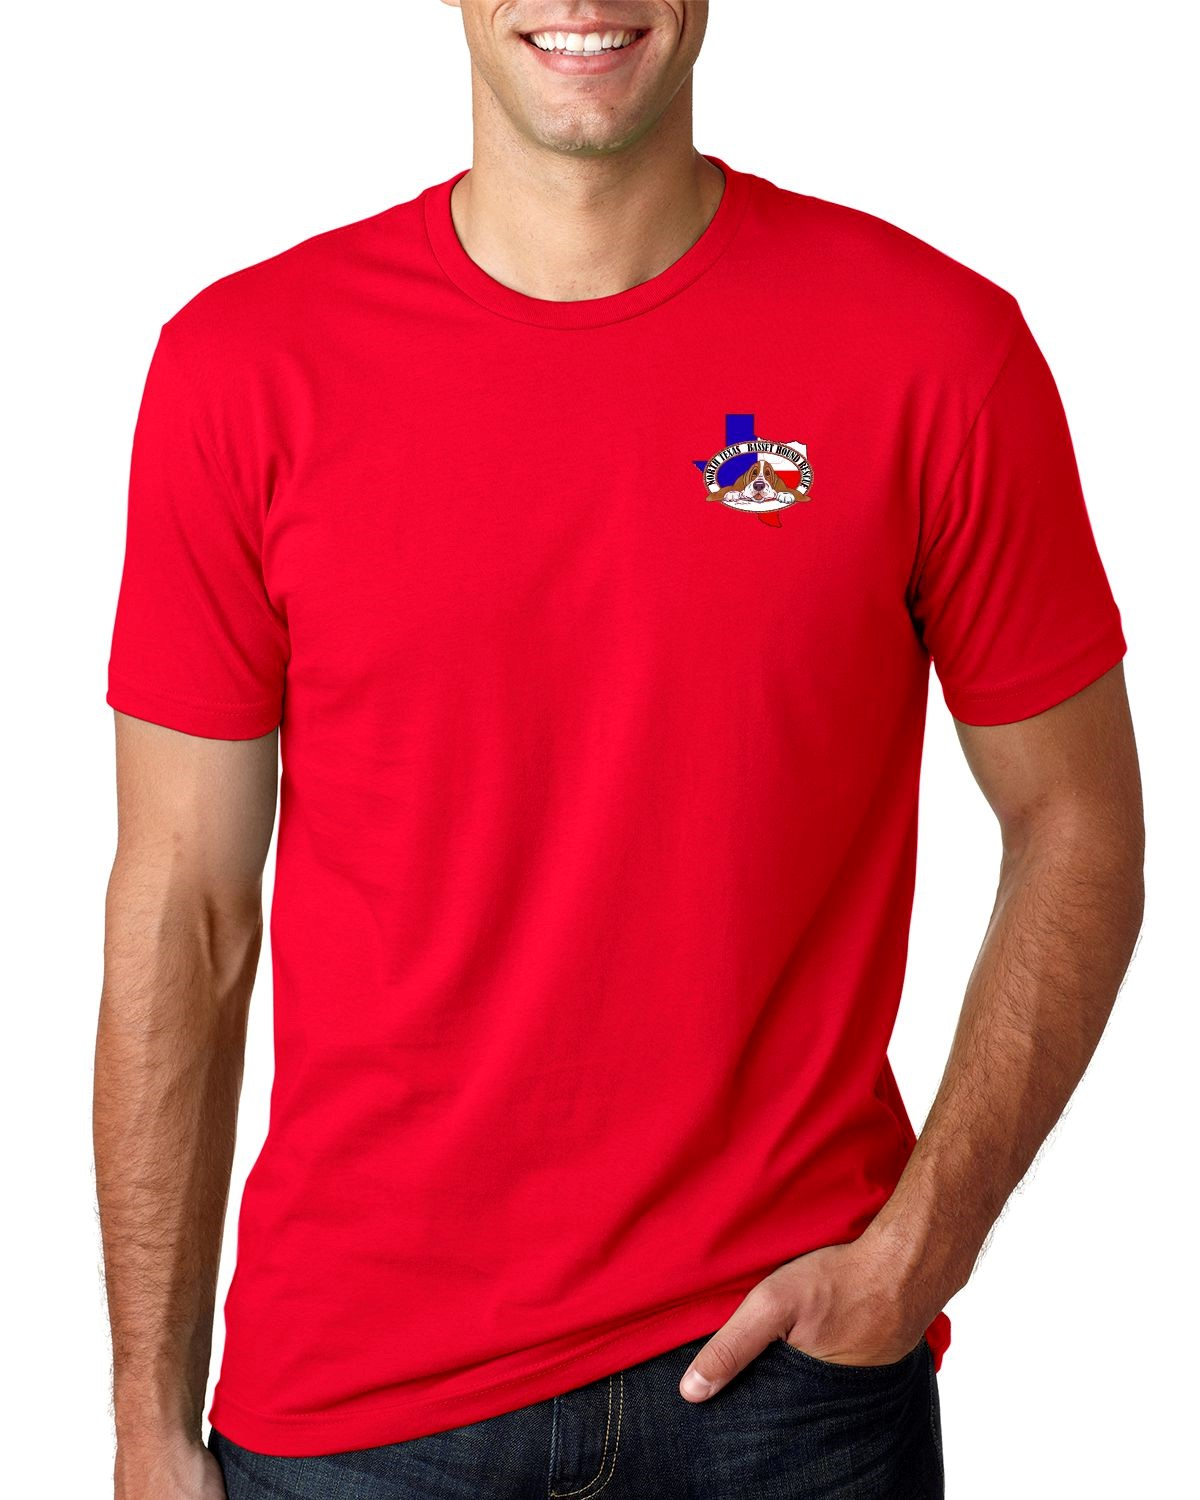 RED NTBHR SHIRT